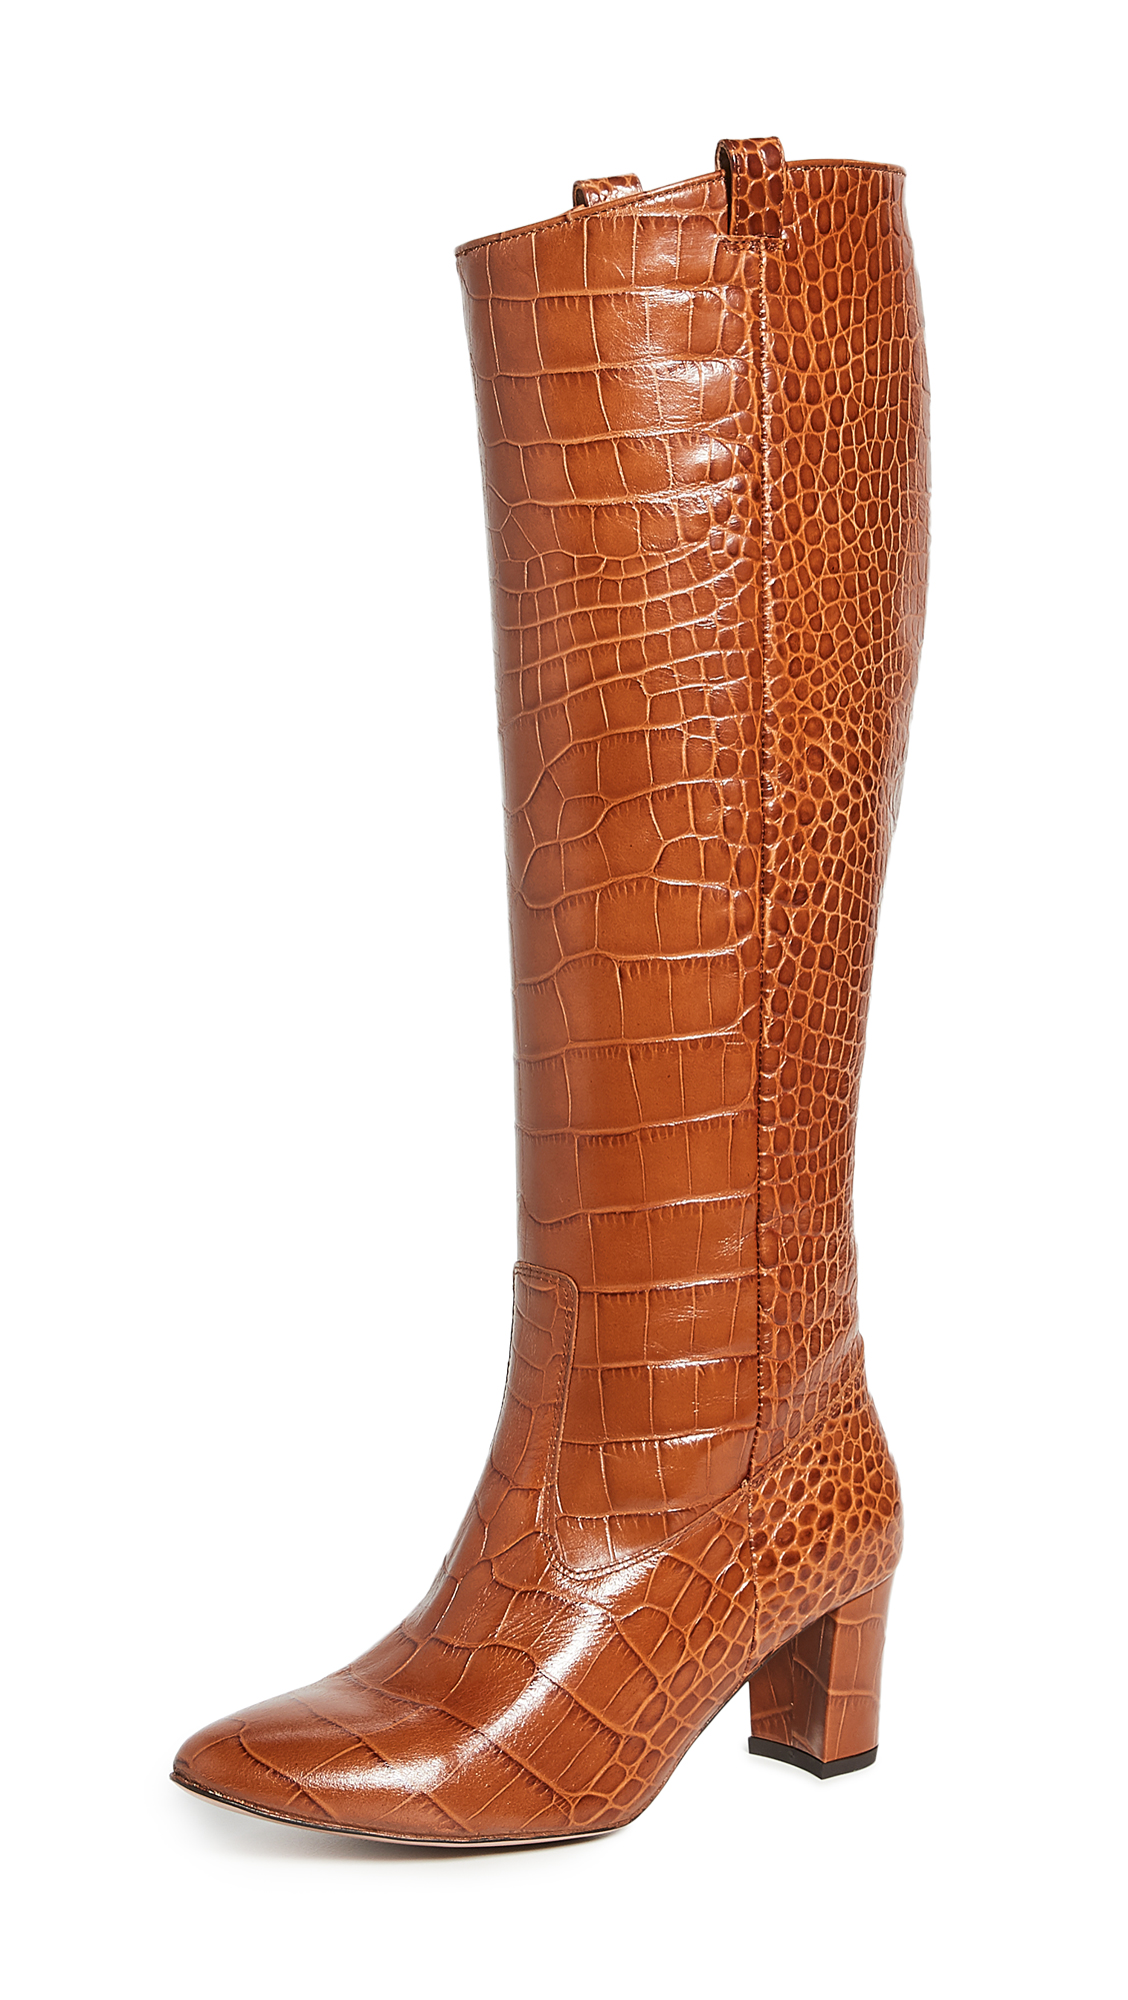 Veronica Beard Abella Boots - 50% Off Sale